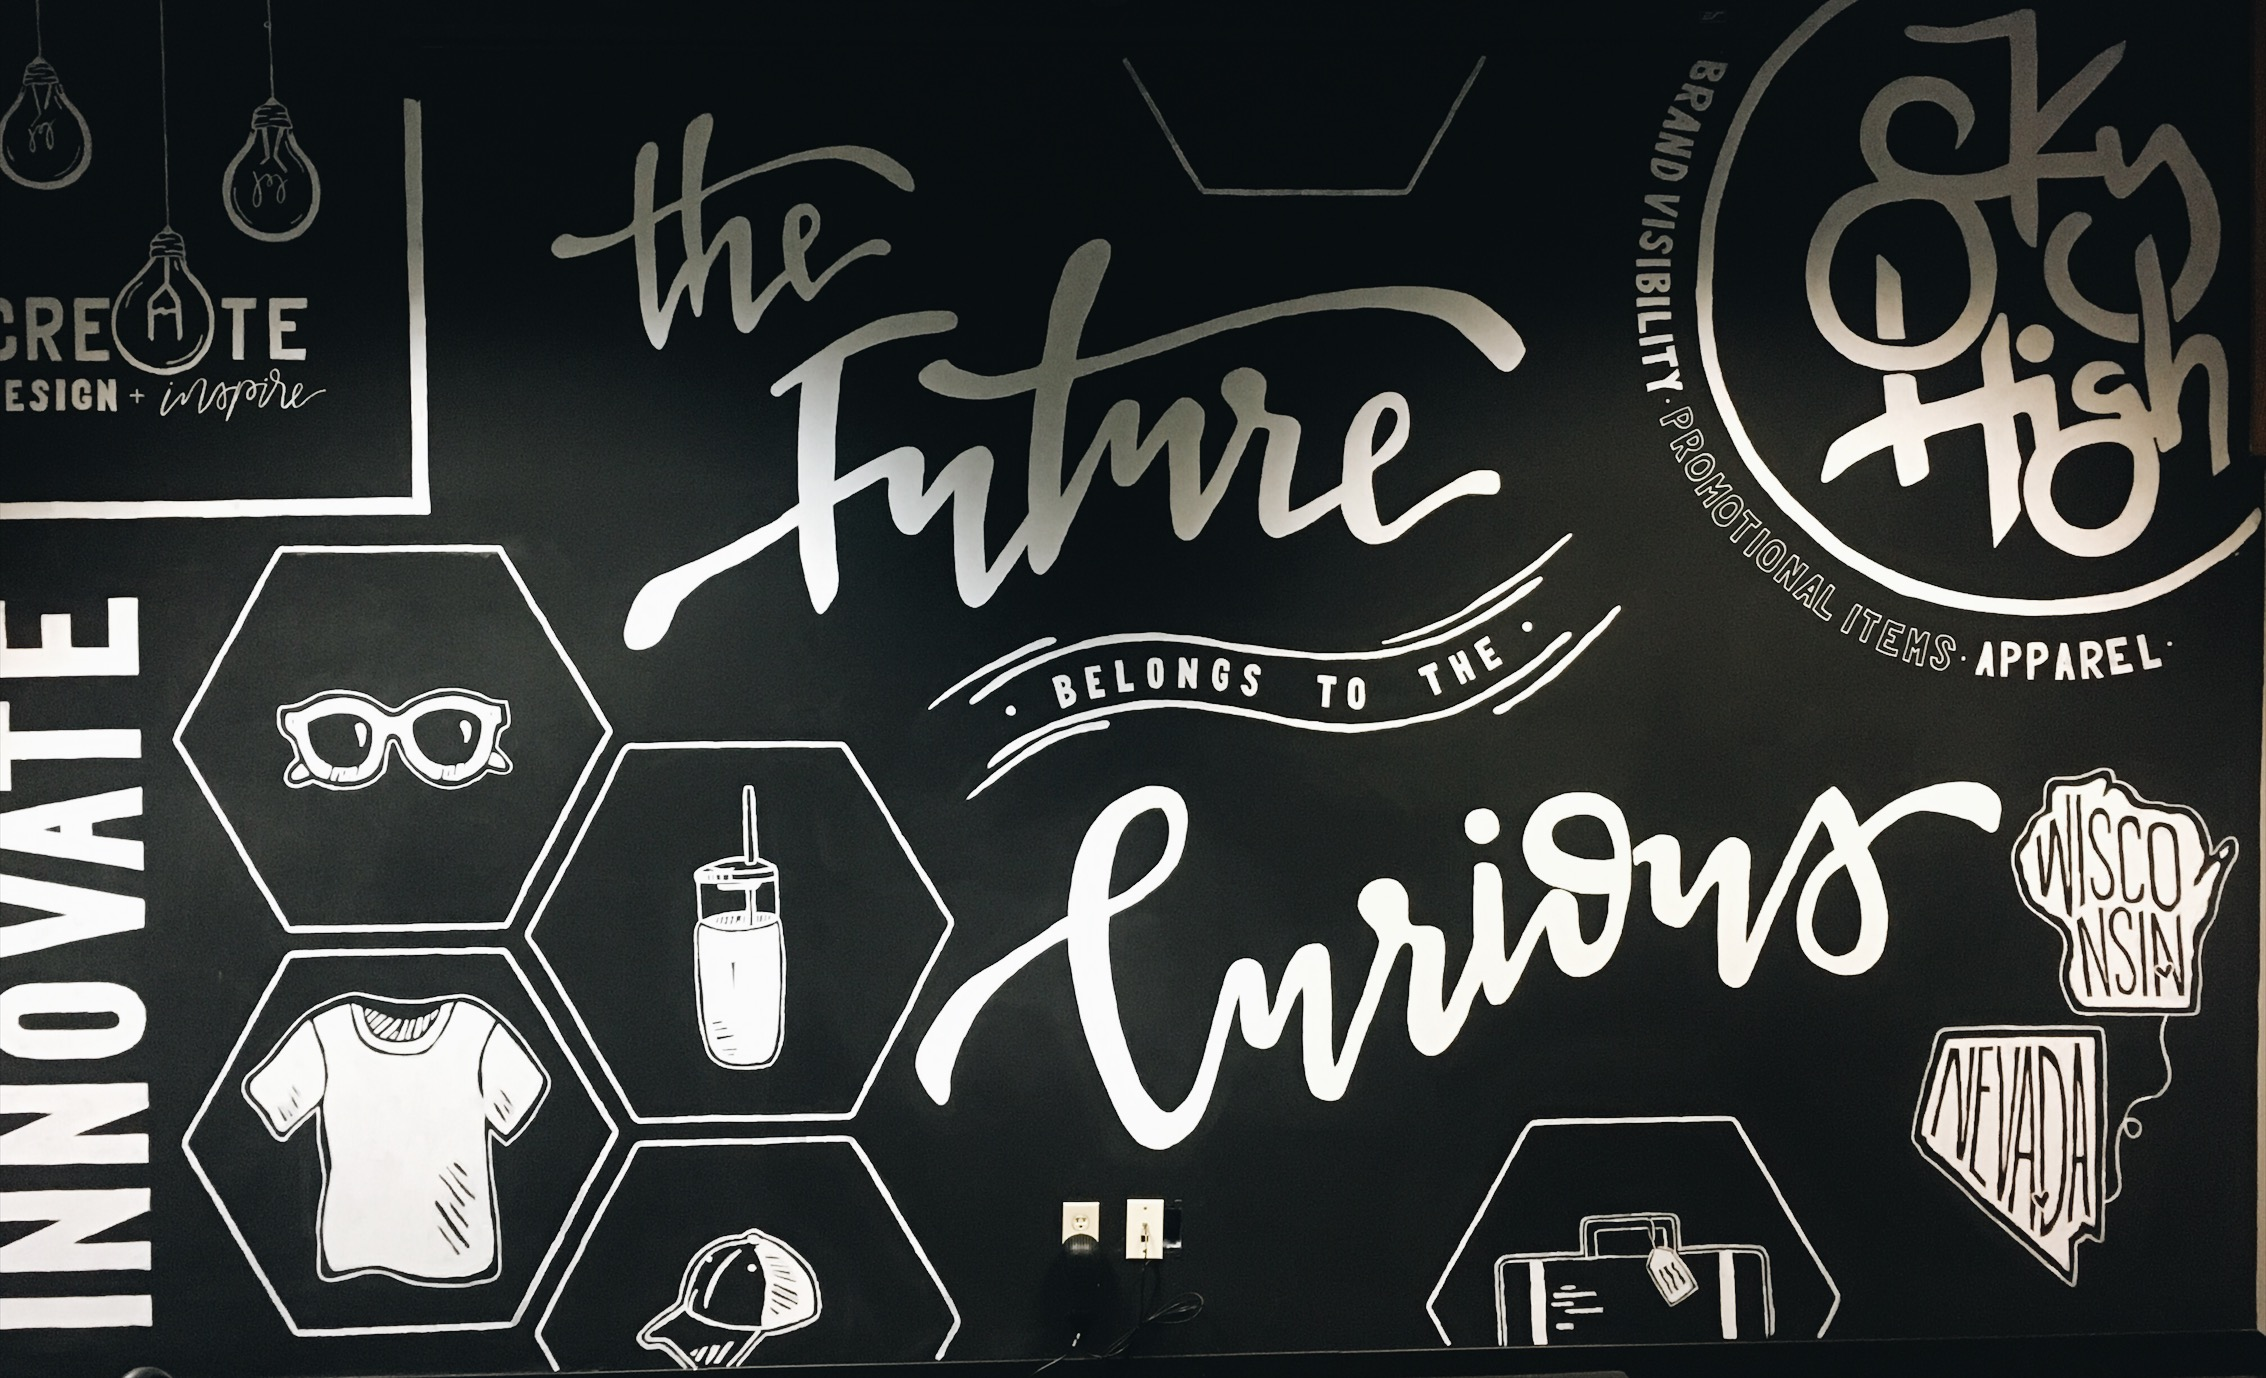 / wall mural for local marketing firm /